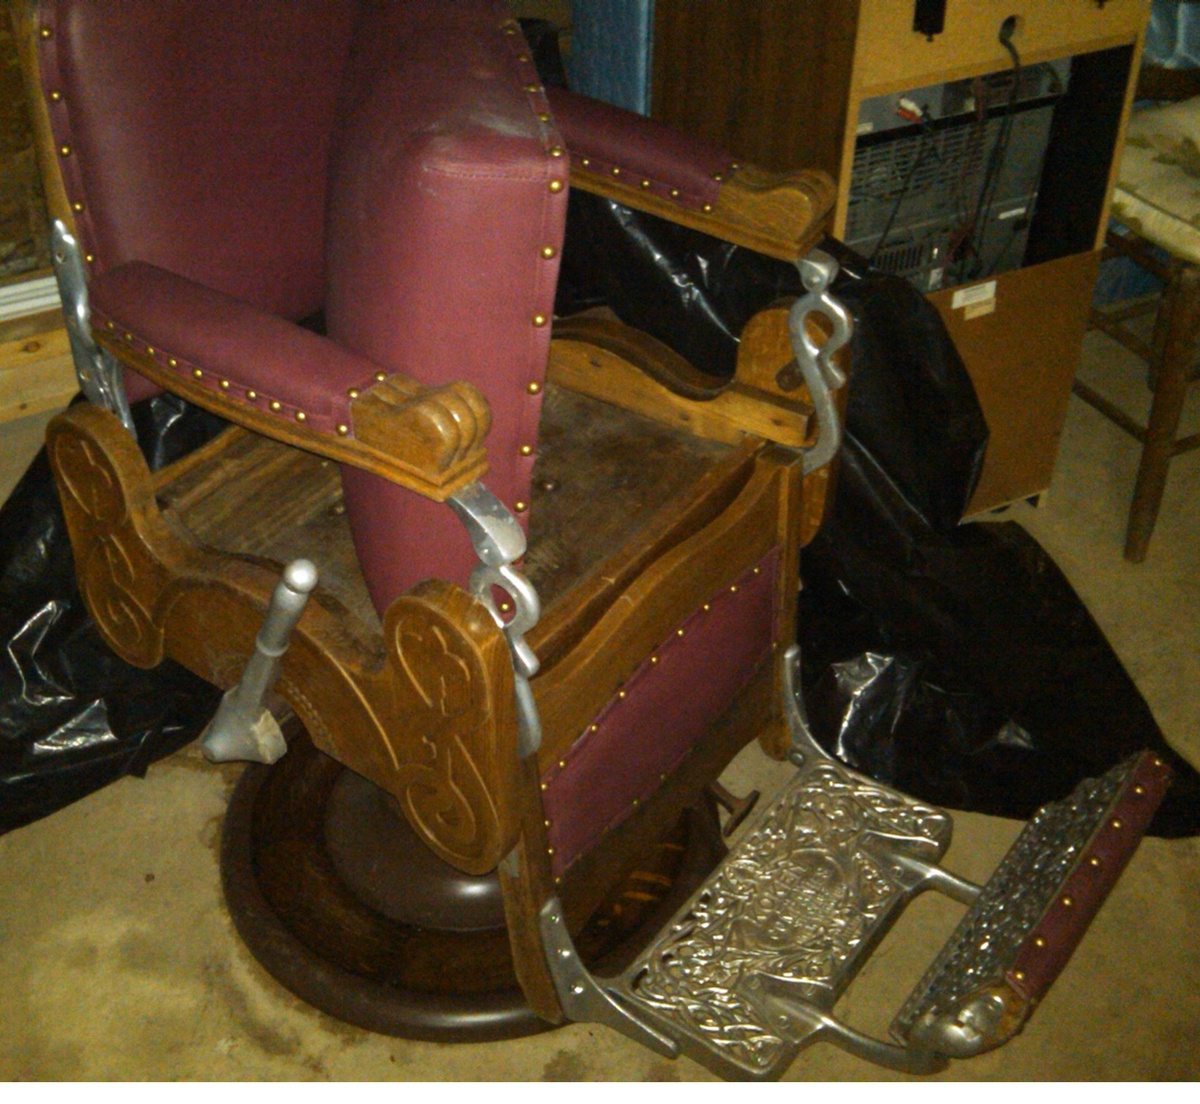 chair ideas trend decor for serial and pic furniture number parts concept barber best antique koken patents sxs